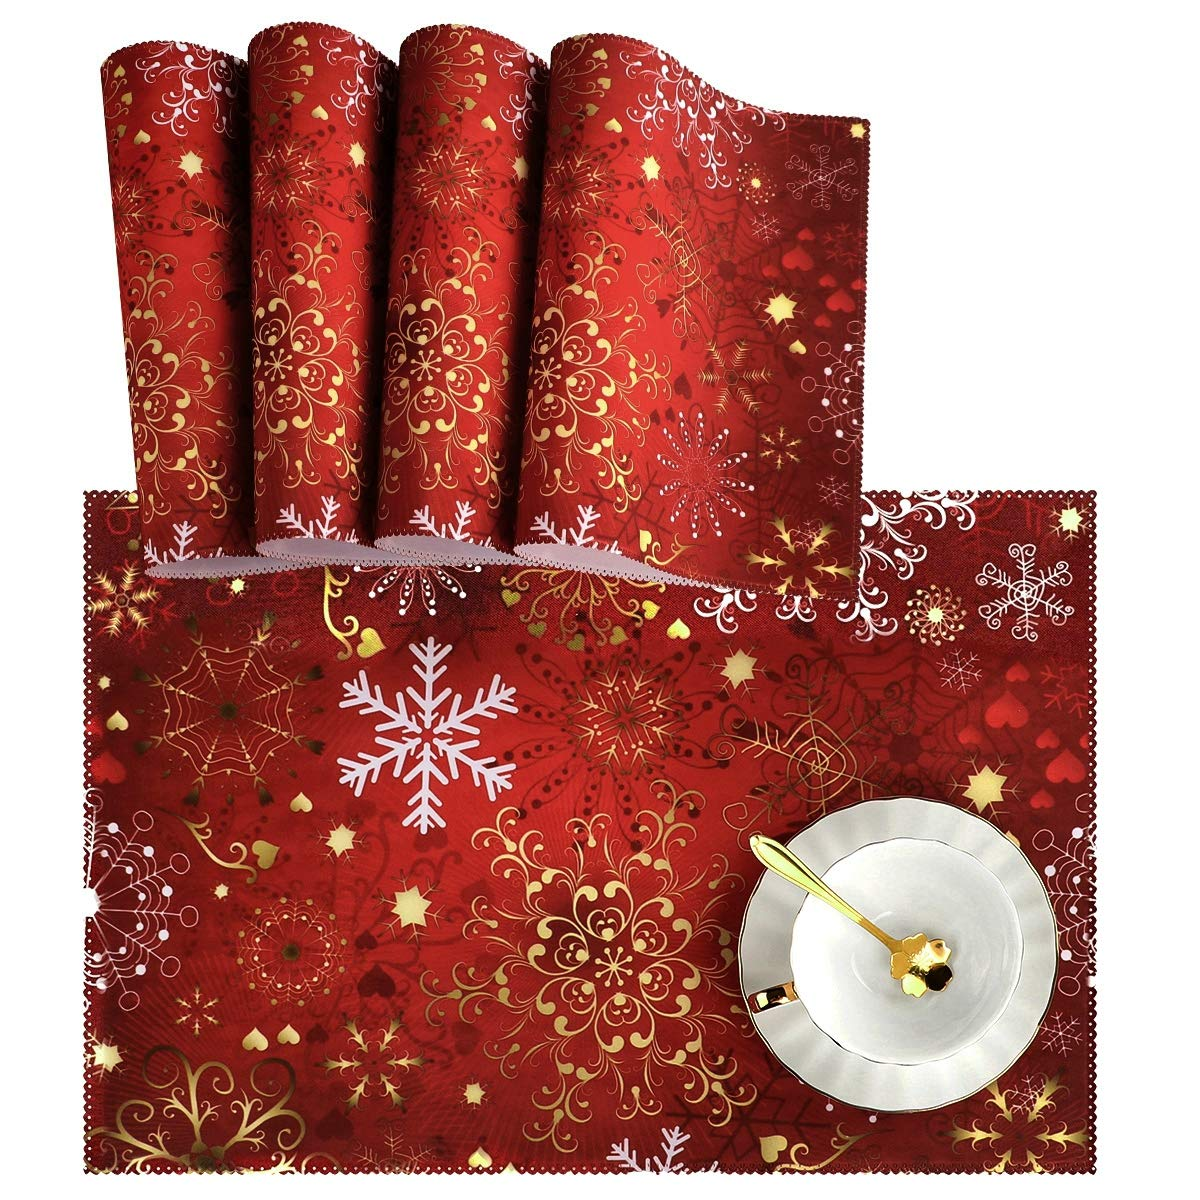 """Naanle Christmas Holiday Placemats Set of 4, Christmas Red Gold Snowflake Non Slip Heat-Resistant Washable Table Place Mats for Kitchen Dining Table Home Decoration, 12"""" x 18"""""""